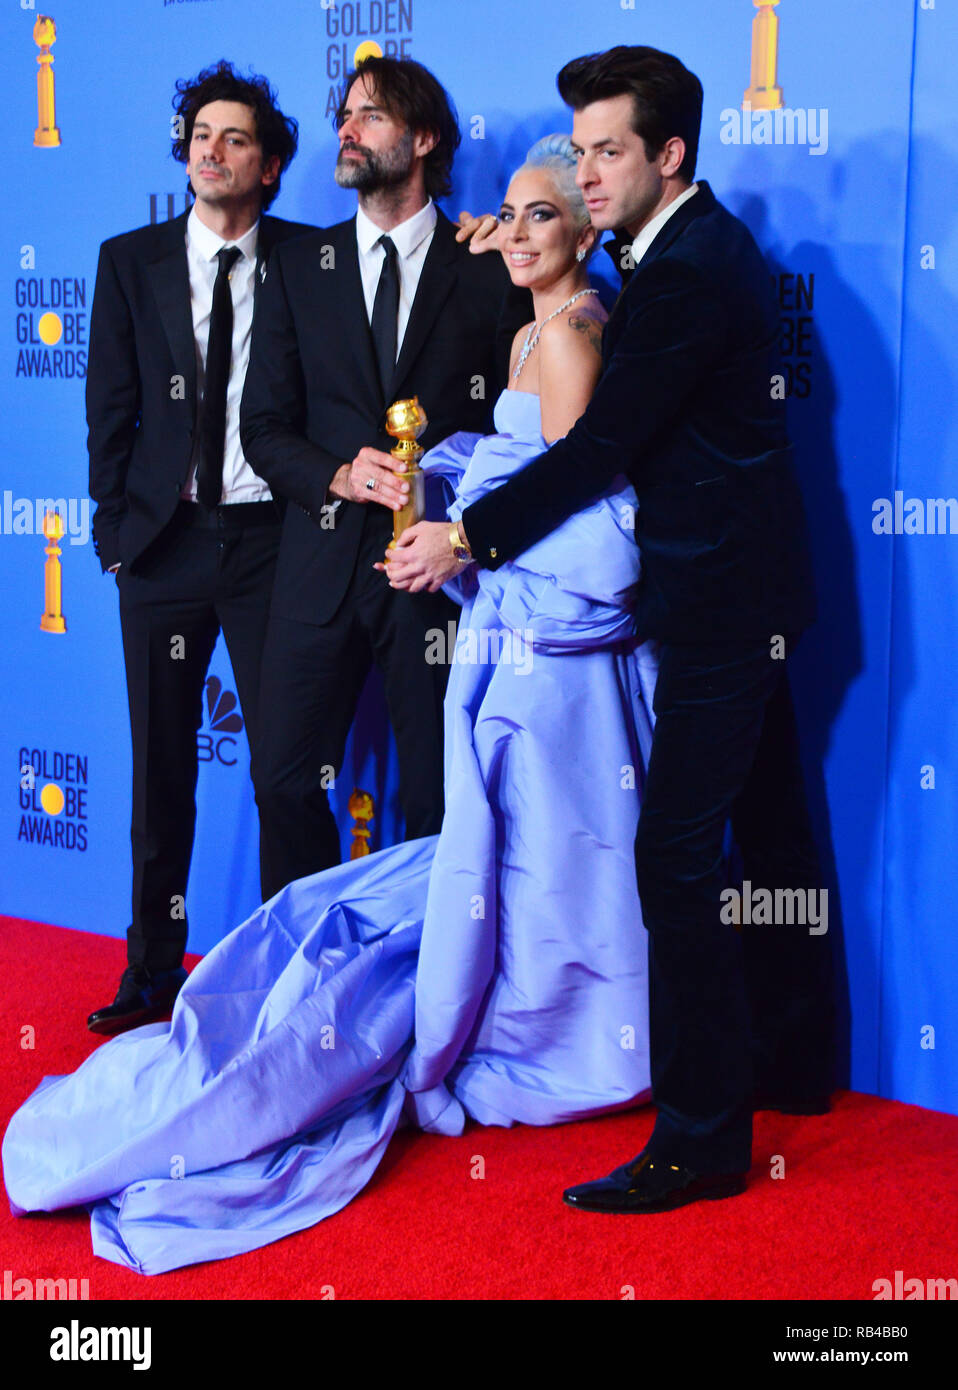 Los Angeles, USA. 06th Jan, 2019. Lady Gaga, Mark Ronson, Anthony Rossomondo, Andrew Wyatt 163 in the press room during the 76th Annual Golden Globe Awards at The Beverly Hilton Hotel on January 6, 2019 in Beverly Hills, California Credit: Tsuni/USA/Alamy Live News - Stock Image